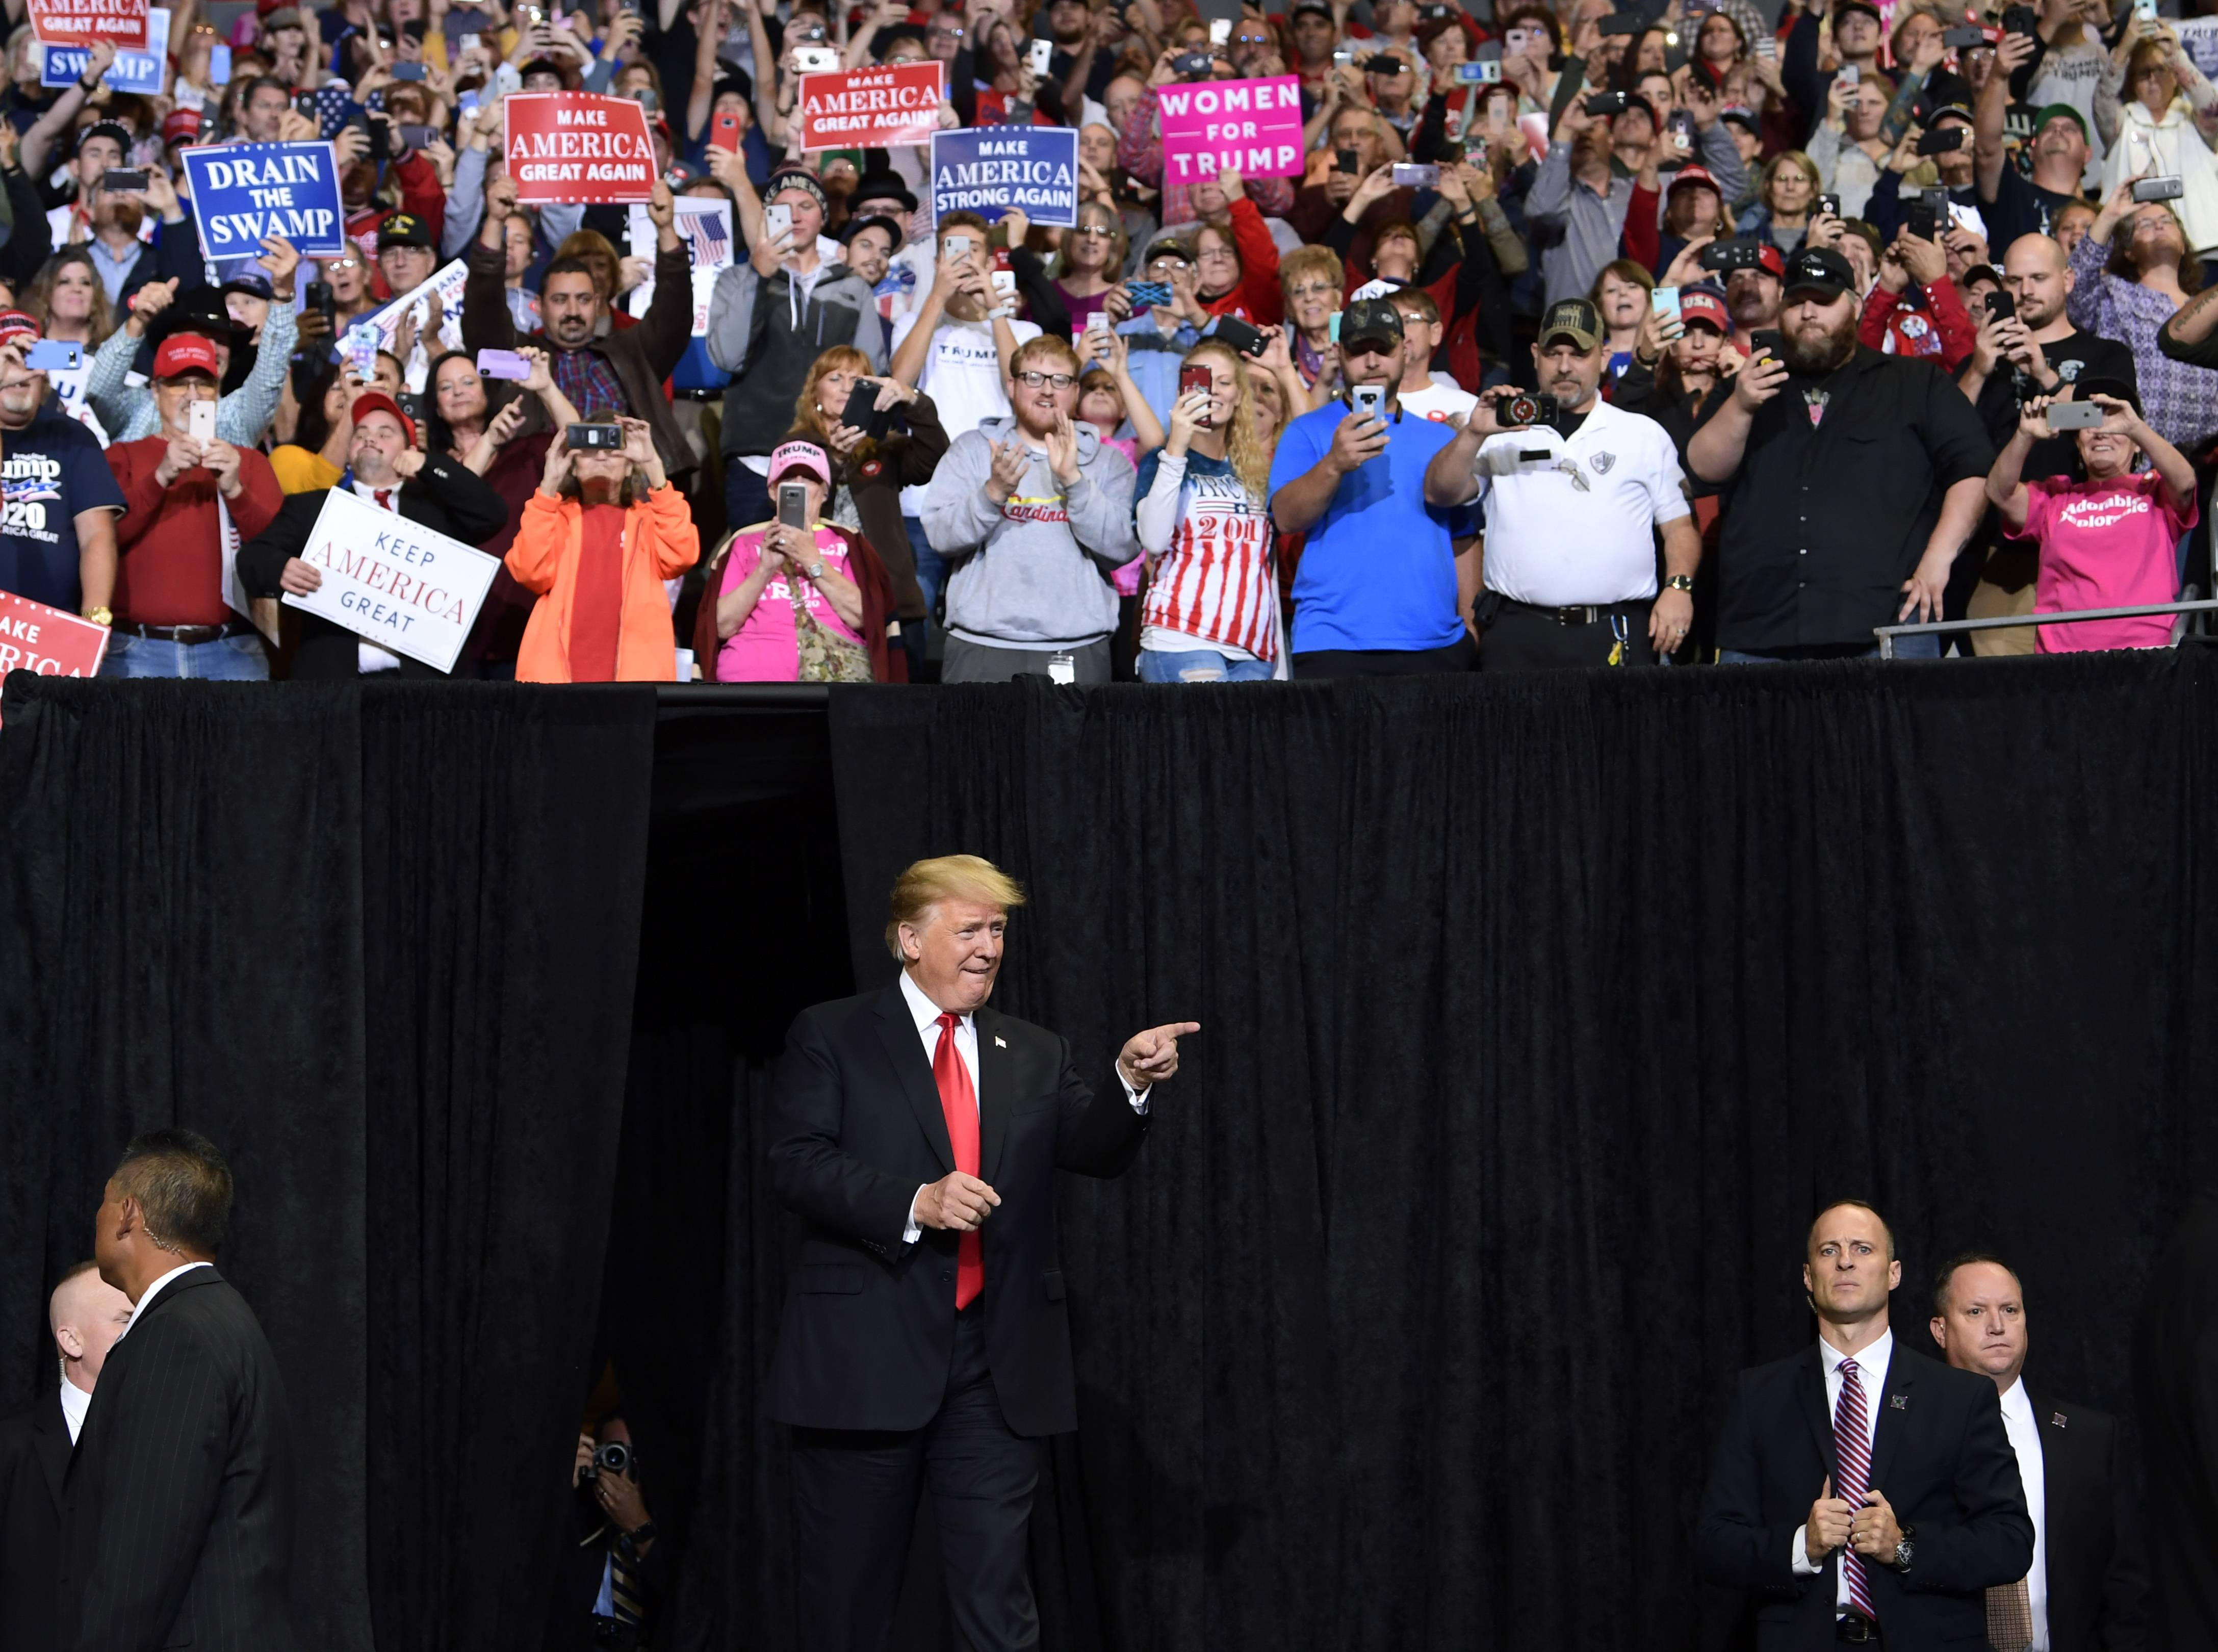 President Donald Trump arrives to speak at a rally in Council Bluffs, Iowa, Tuesday, Oct. 9, 2018.